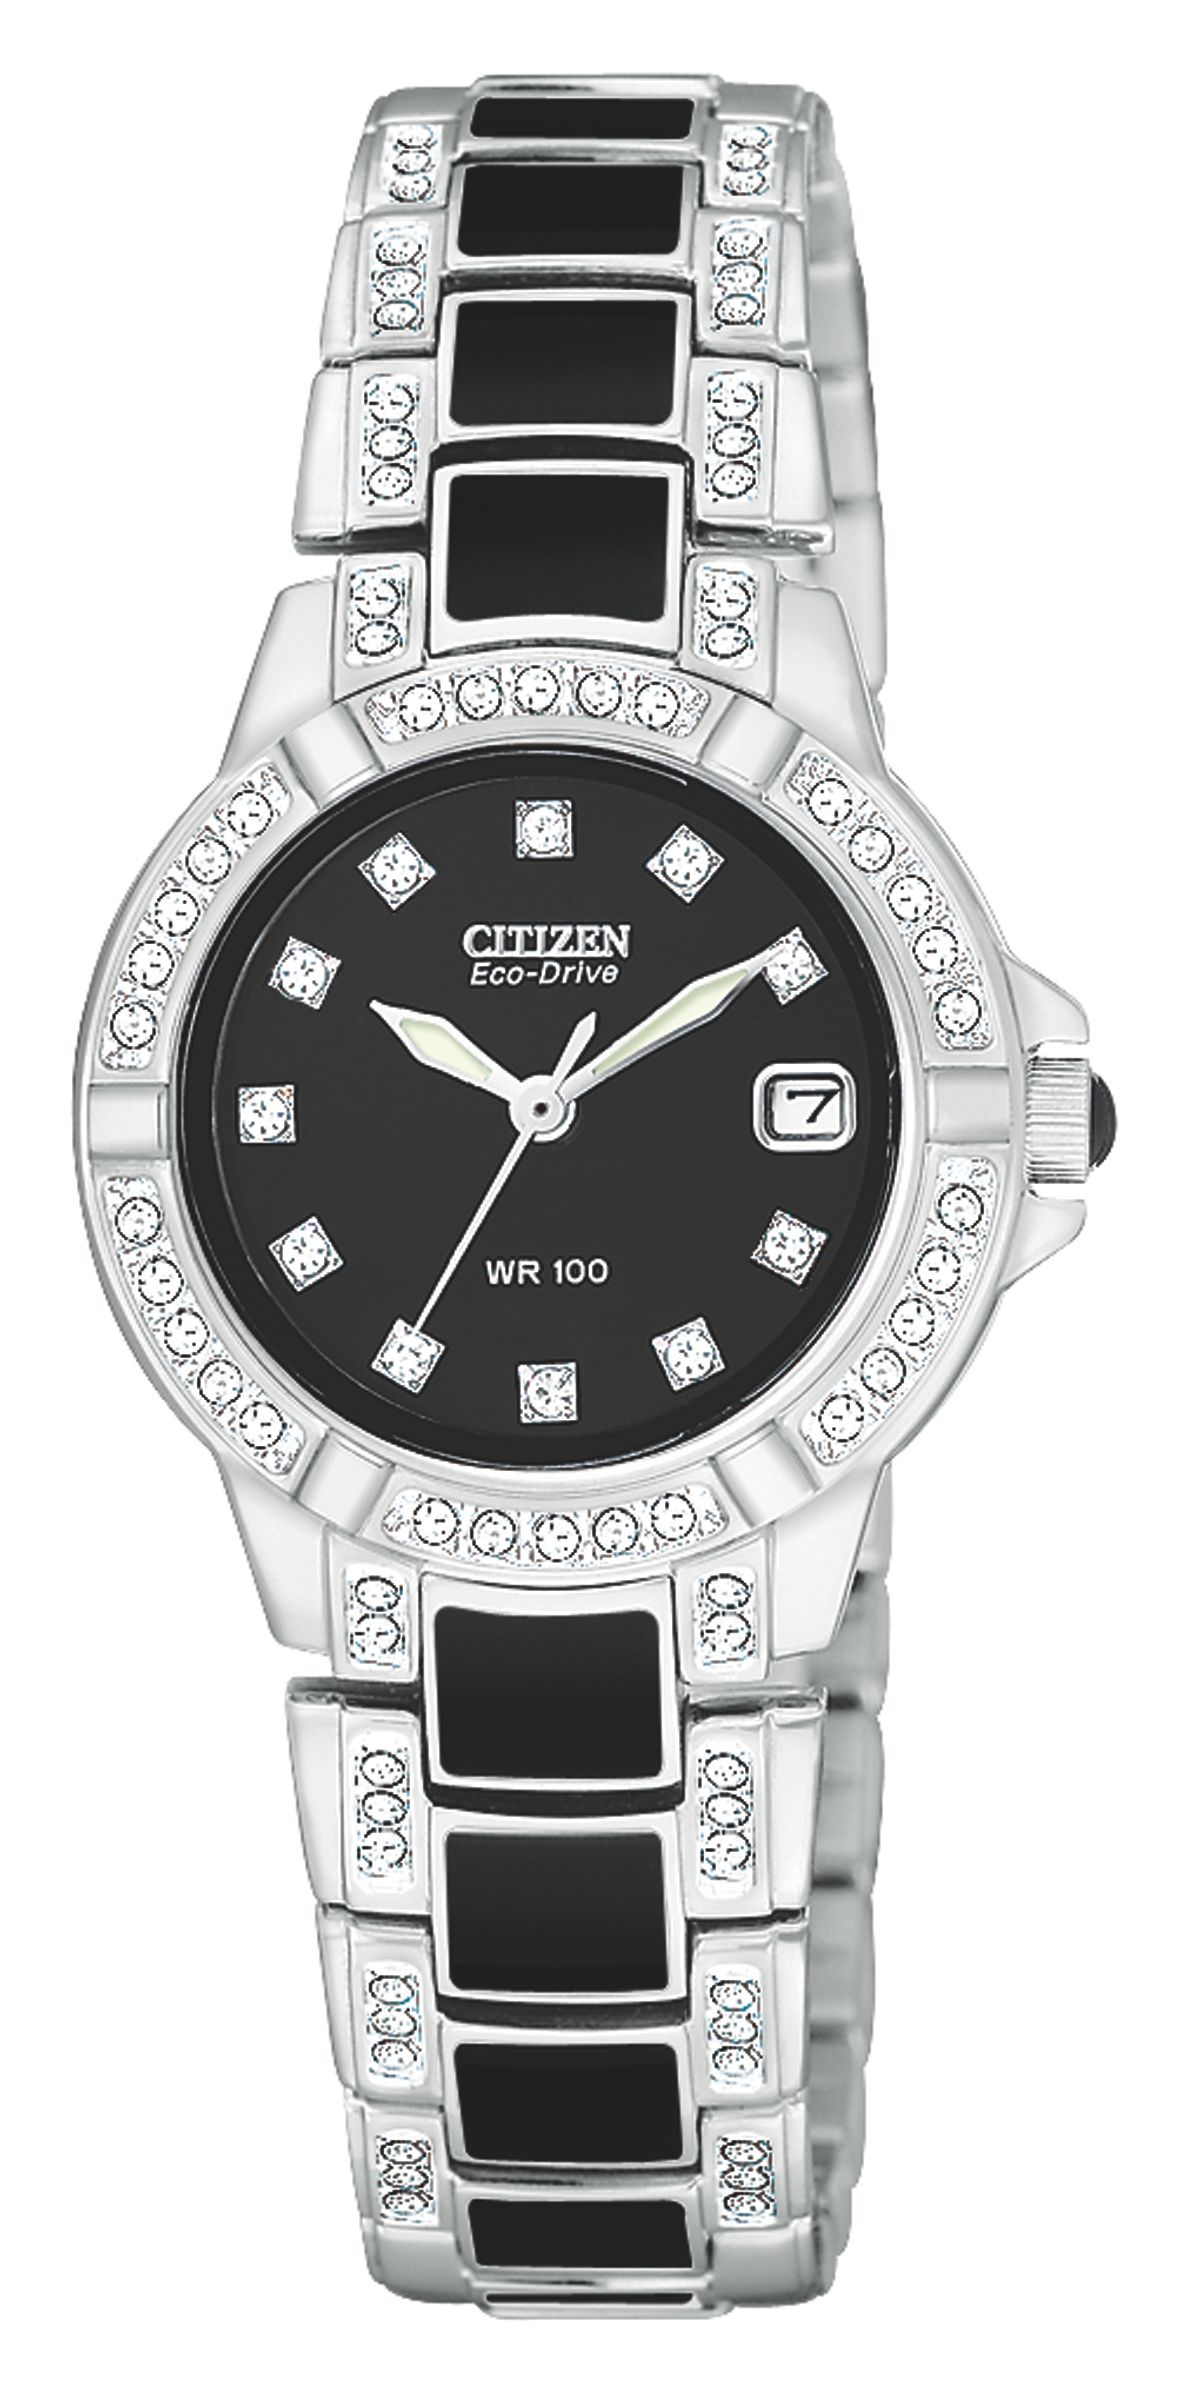 EW0950-82E Ladies Eco-Drive Normandie Wr100